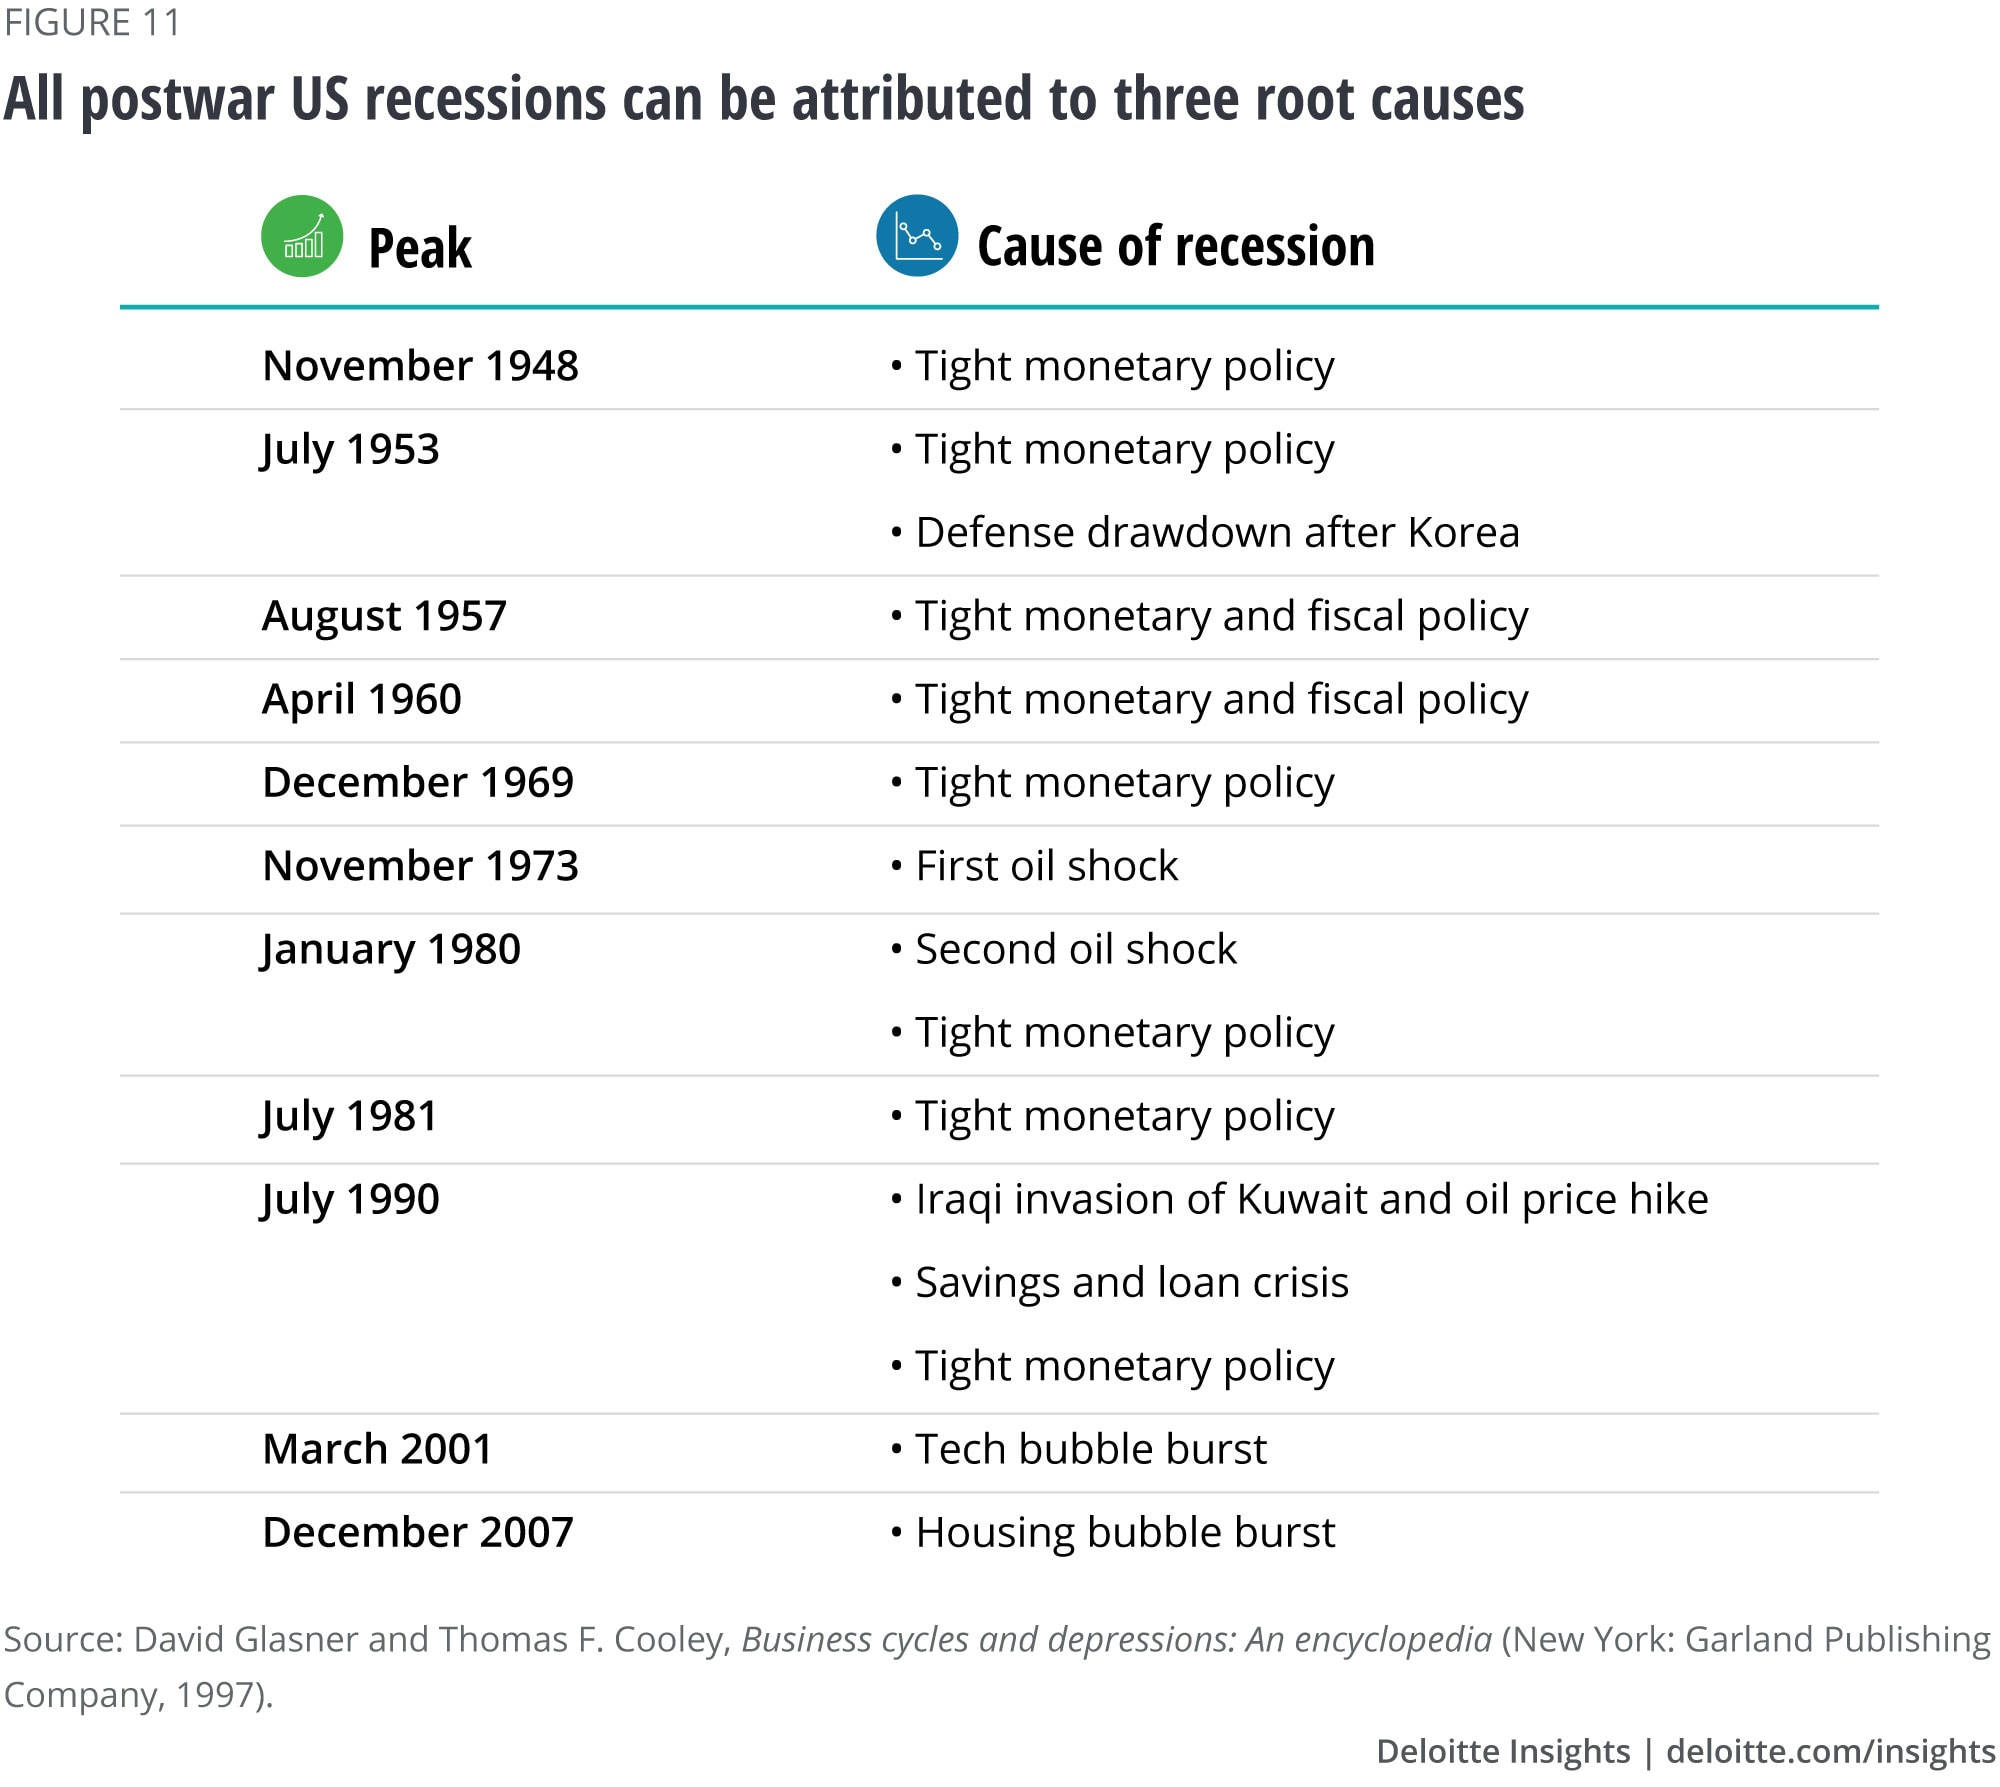 All postwar US recessions can be attributed to three root causes